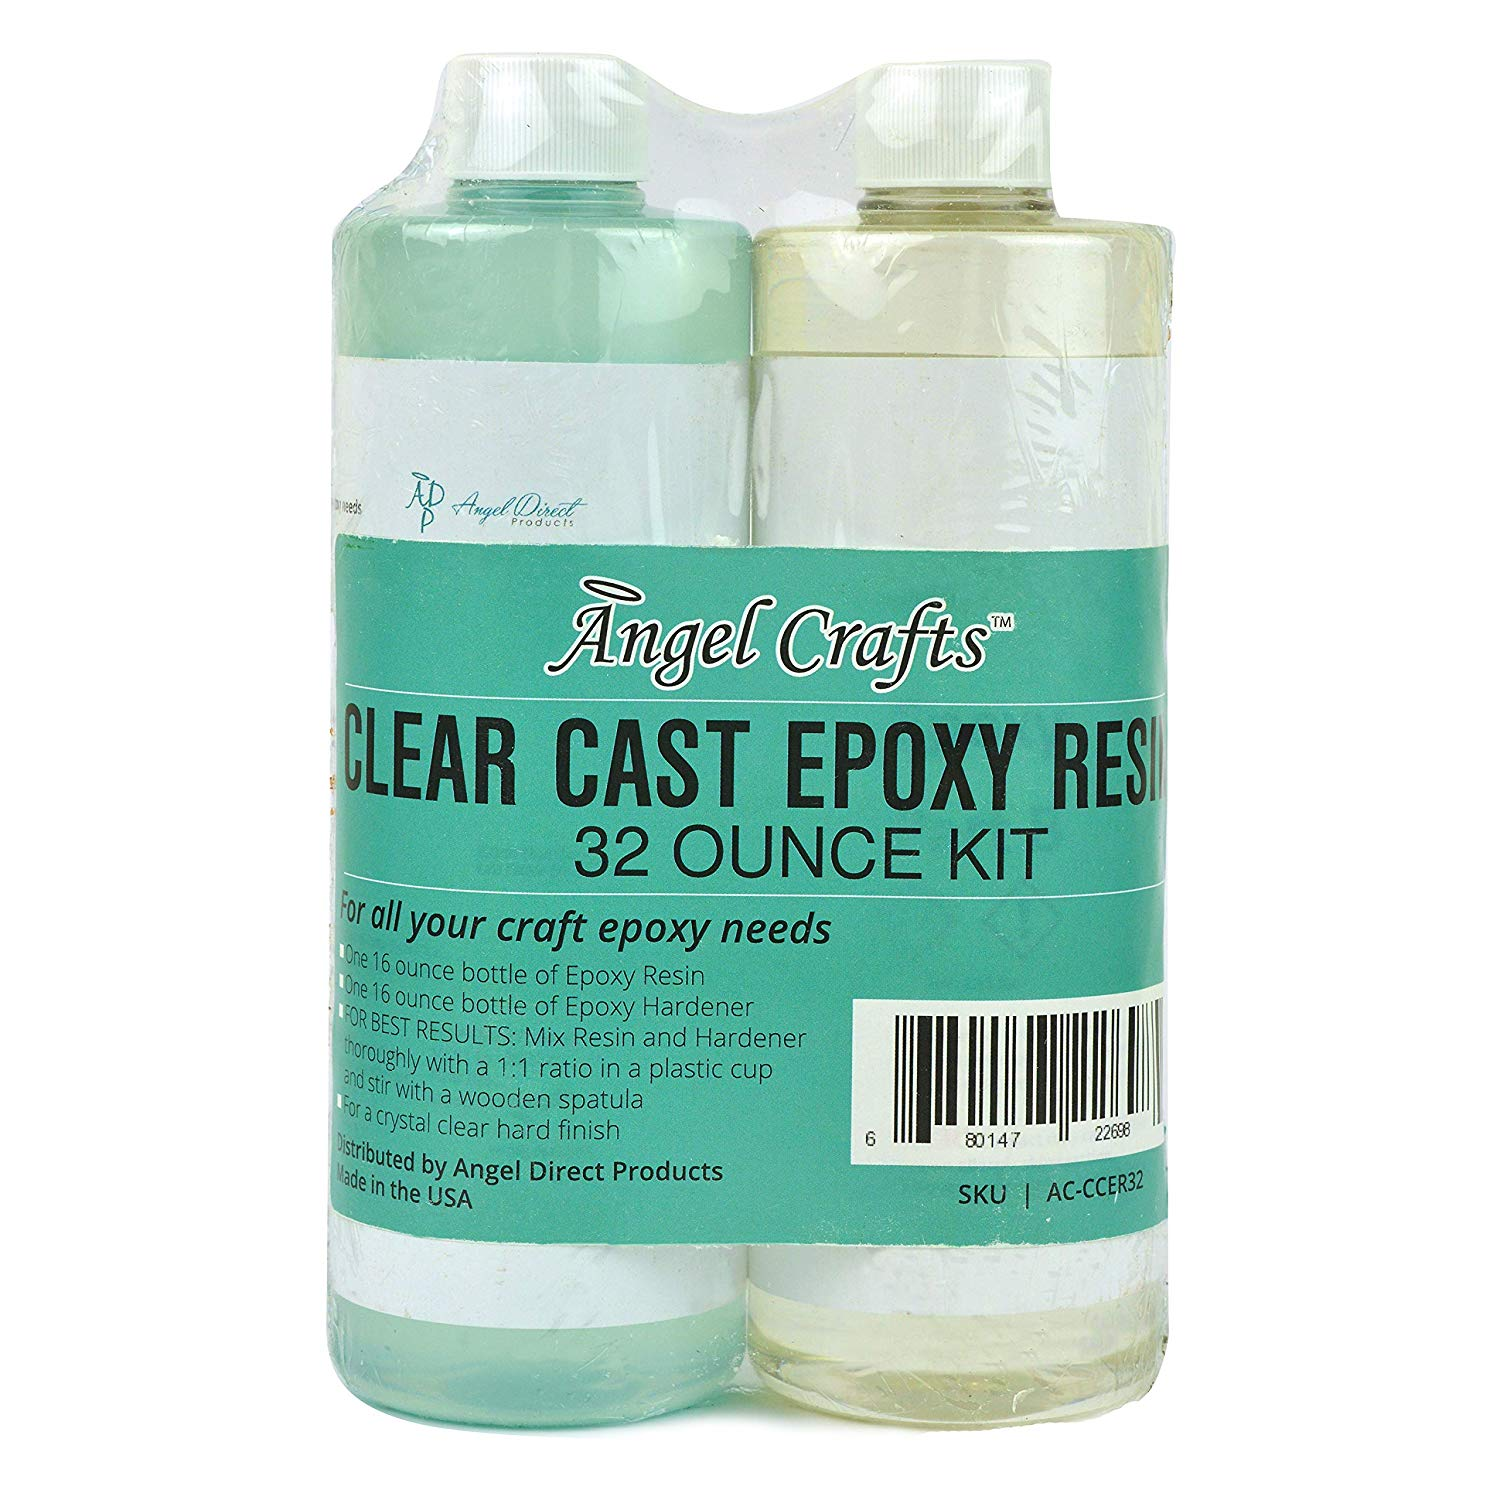 Angel Crafts Clear Cast Epoxy Resin Mix Kit Review | Clear Casting Resin